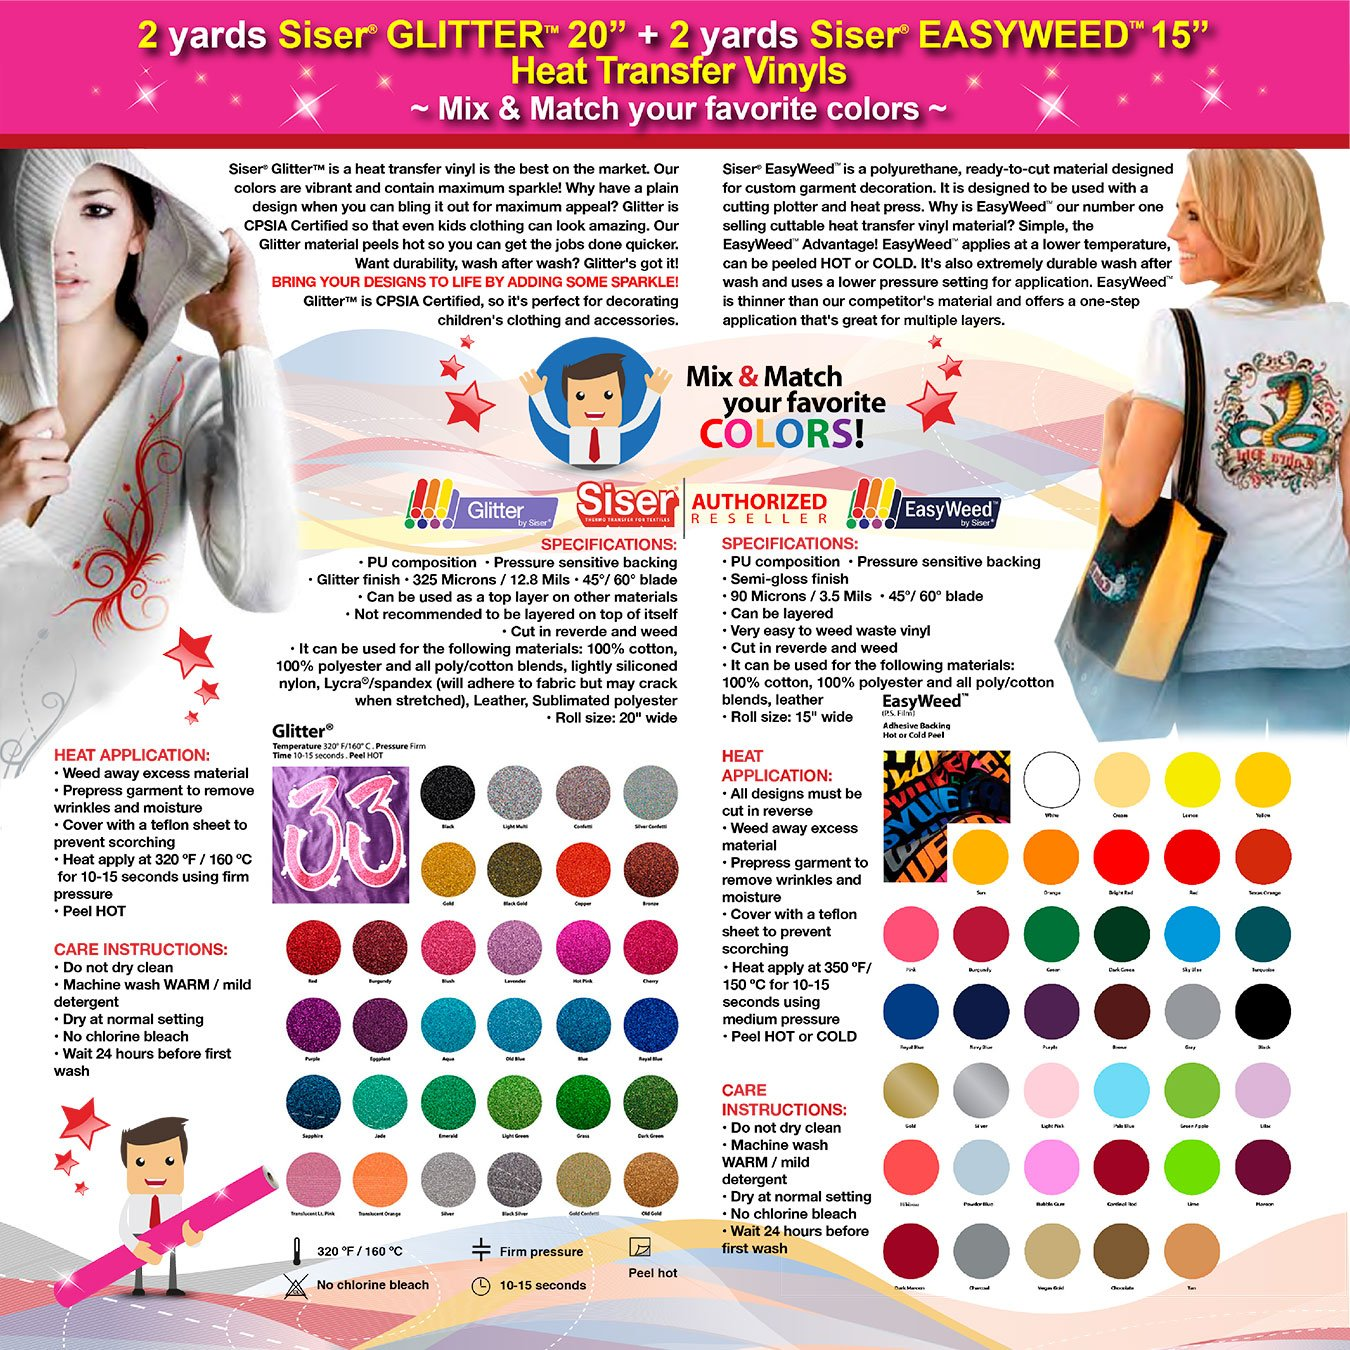 GERCUTTER Store: 2 yards SISER GLITTER + 2 yards SISER EASYWEED Heat Transfer Vinyl on Cotton or Polyester Mesh and Poly-blend Fabrics (Mix & Match your favorite colors)